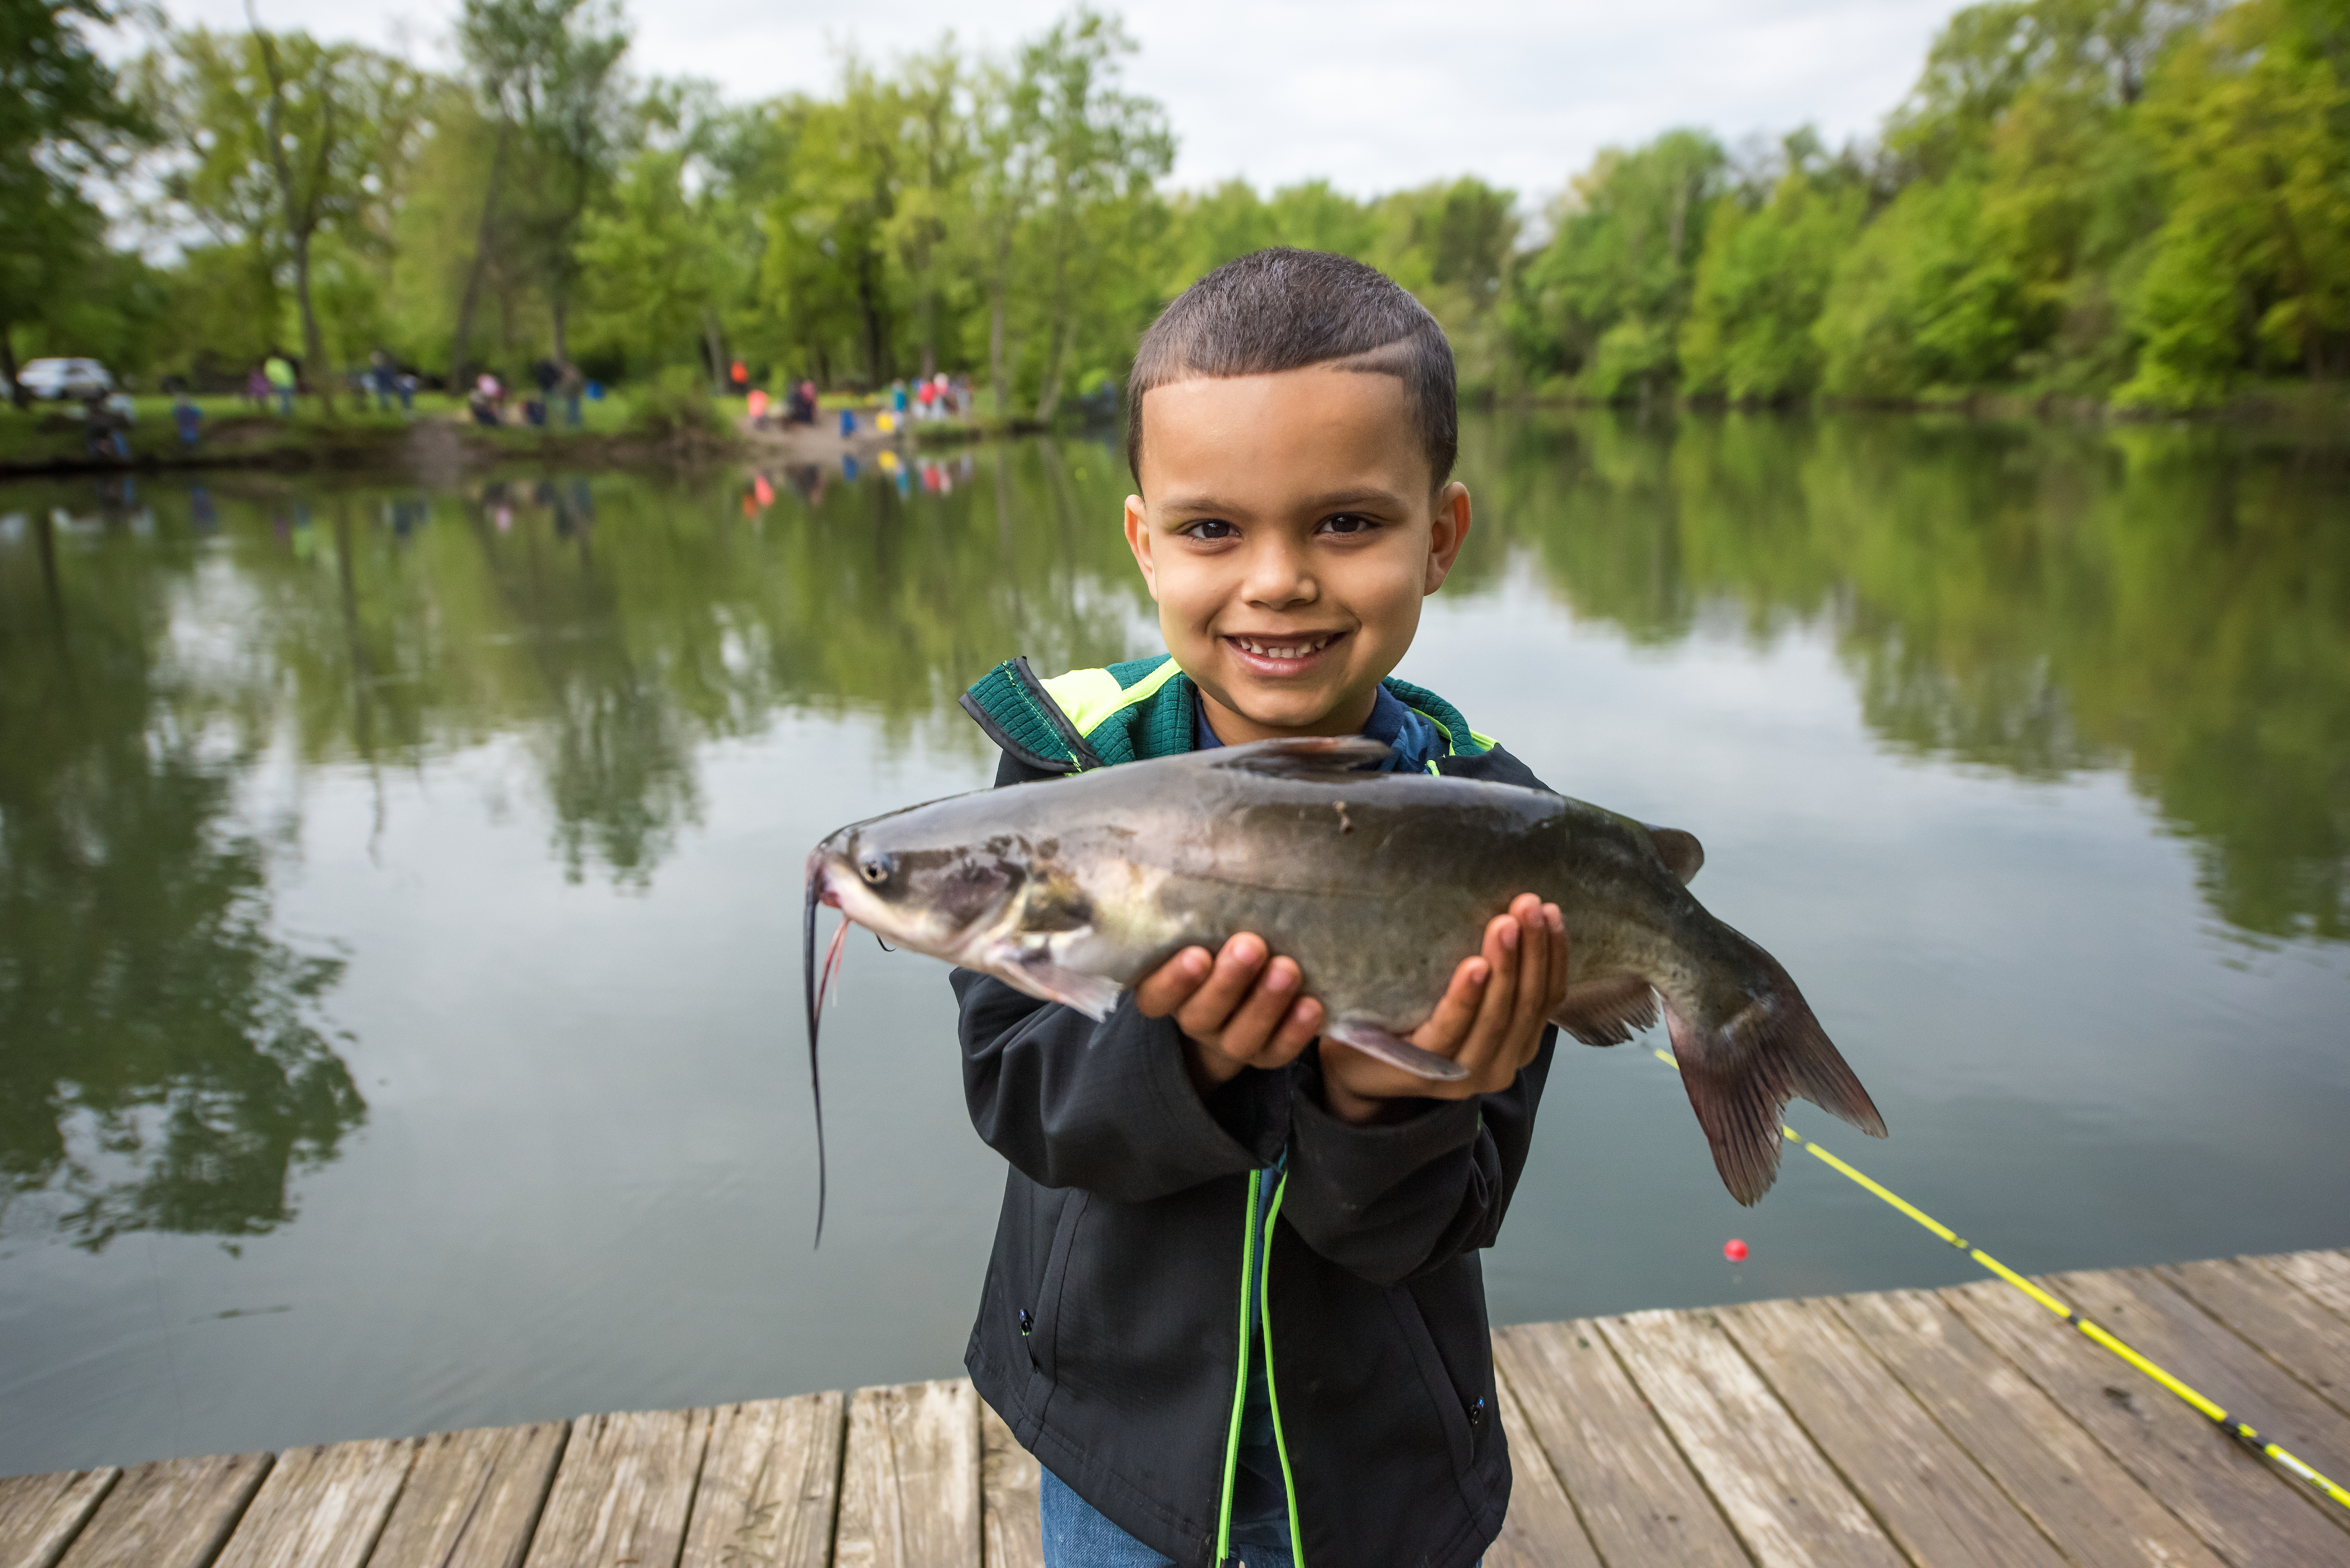 Family Fishing: Perfect for Social Distancing